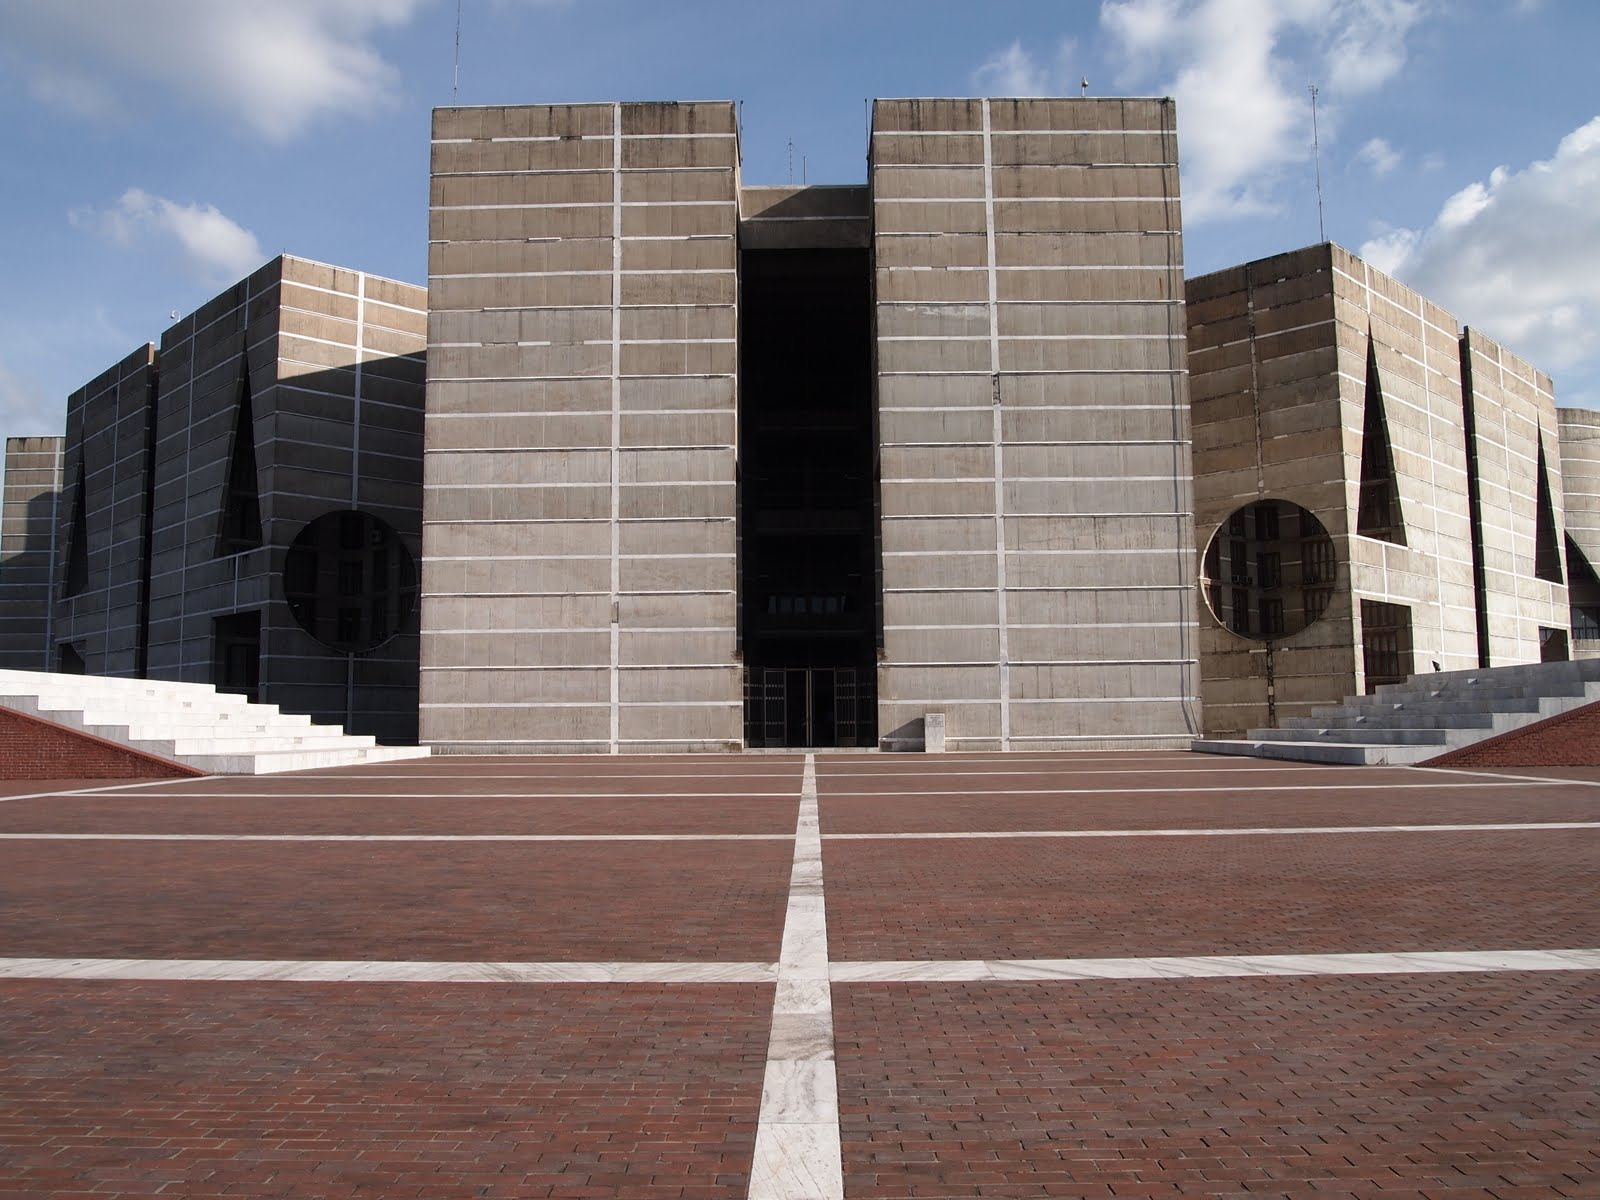 National Assembly Building Dhaka, Tulsi Crafts: National Assembly building Dhaka by Louis Kahn